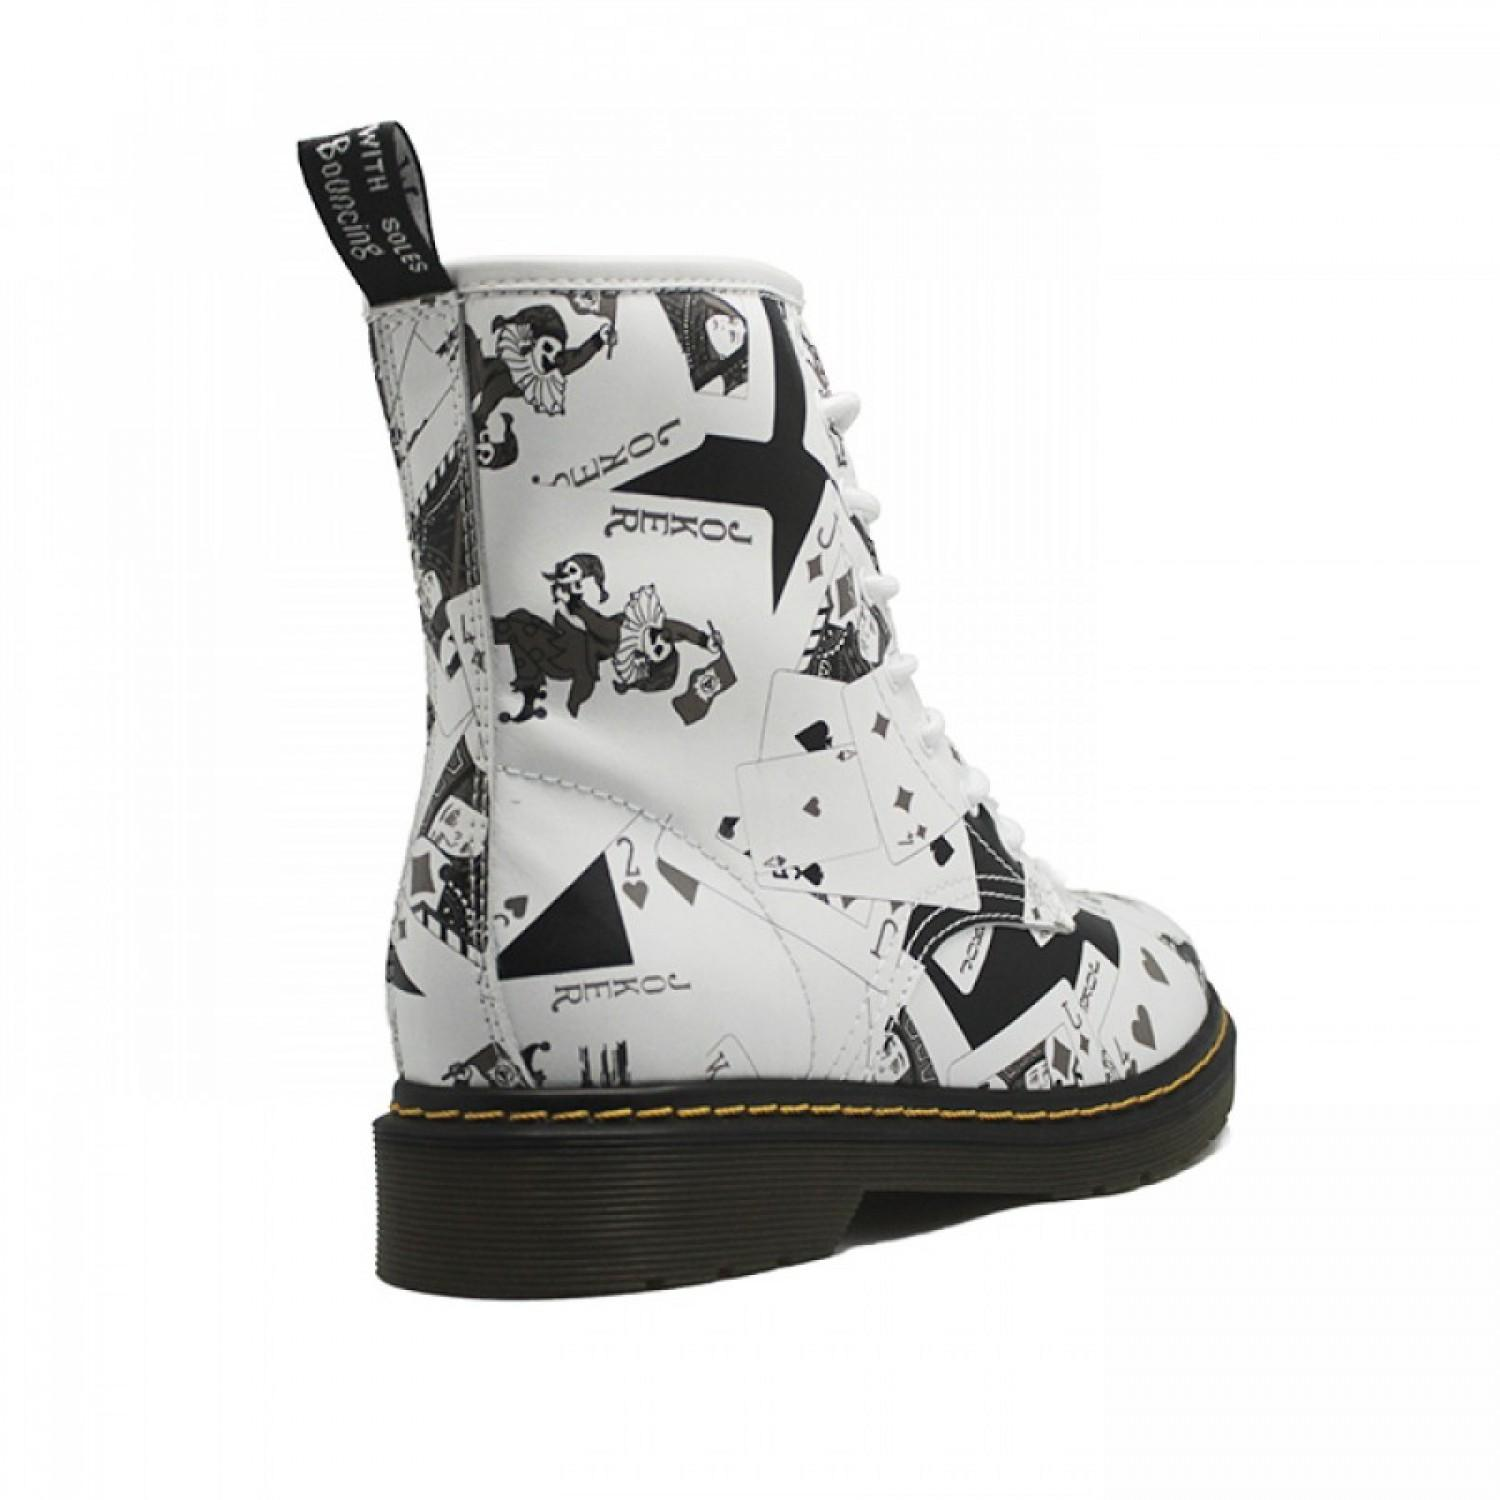 Women's Winter Boots Dr. Martens White/Black